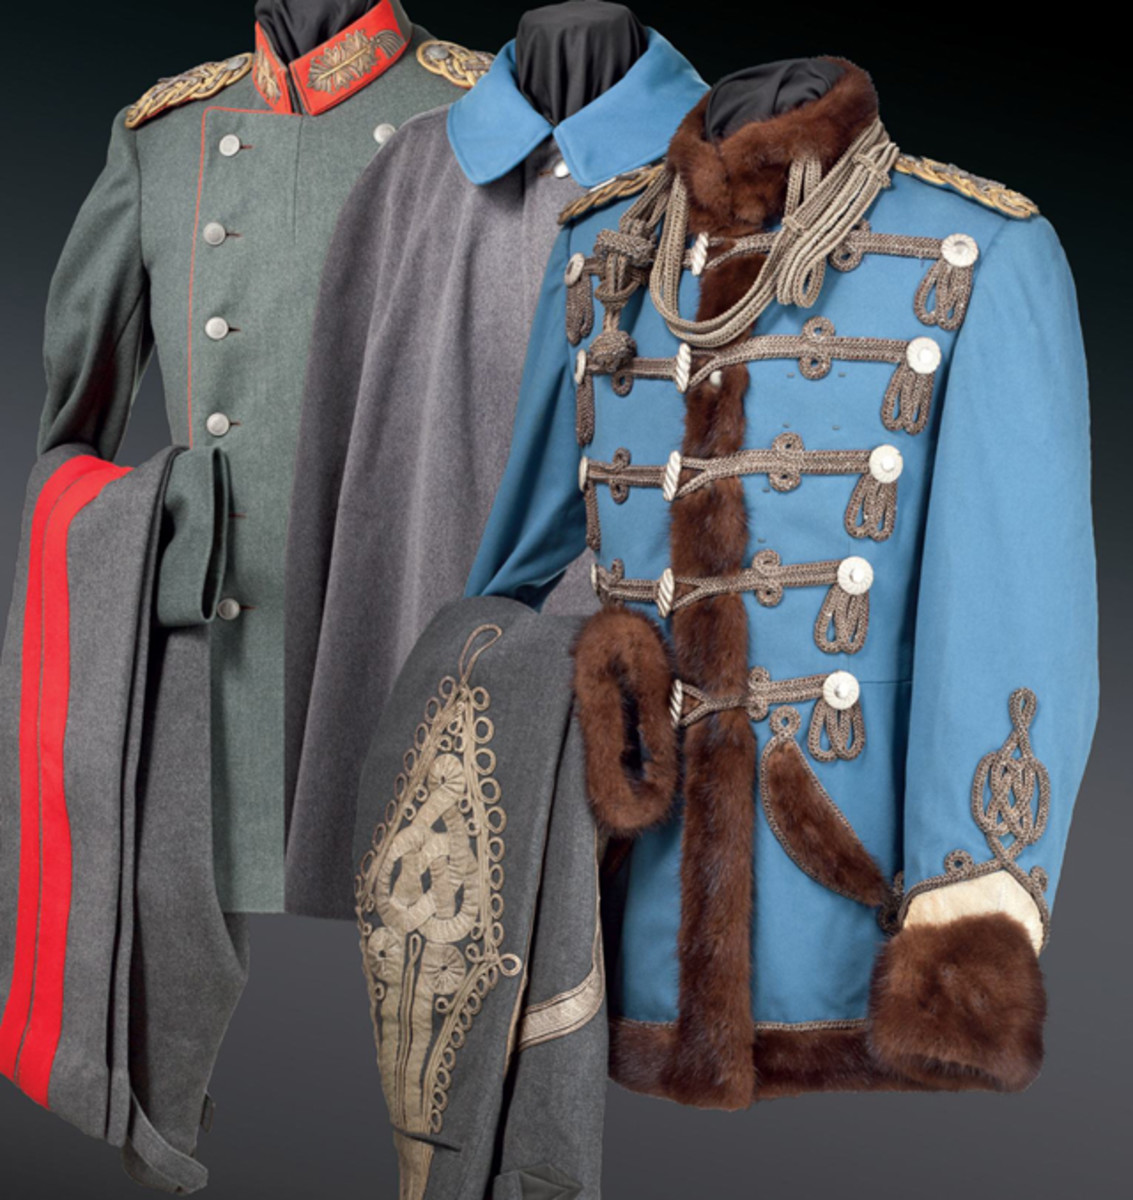 Collectors were able to purchase two uniforms from the personal wardrobe of Kaiser Franz Joseph I of Austria. A field-grey litewka with matching trousers sold for 8,000 euros. The fur-trimmed attila with matching parade trousers sparked a thrilling bidding duel when the hammer finally fell at 40,000 euros.